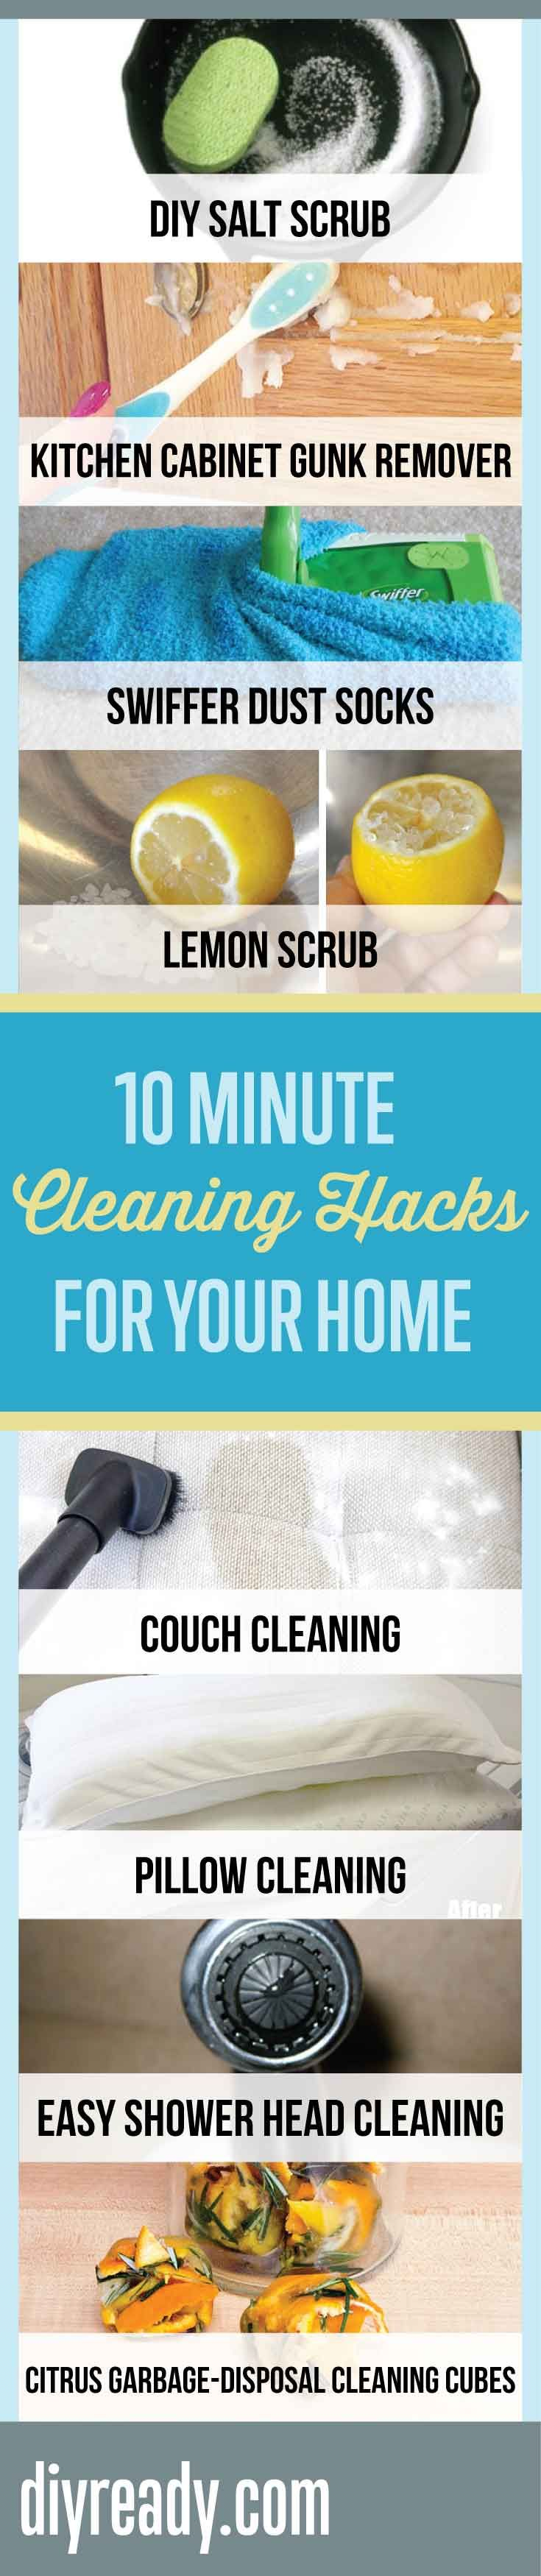 10 Minute Cleaning Hacks For Your Home | Easy Home Cleaners That Cost Nothing! By DIY Ready. http://diyready.com/10-minute-cleaning-hacks-that-will-keep-your-home-sparkling/